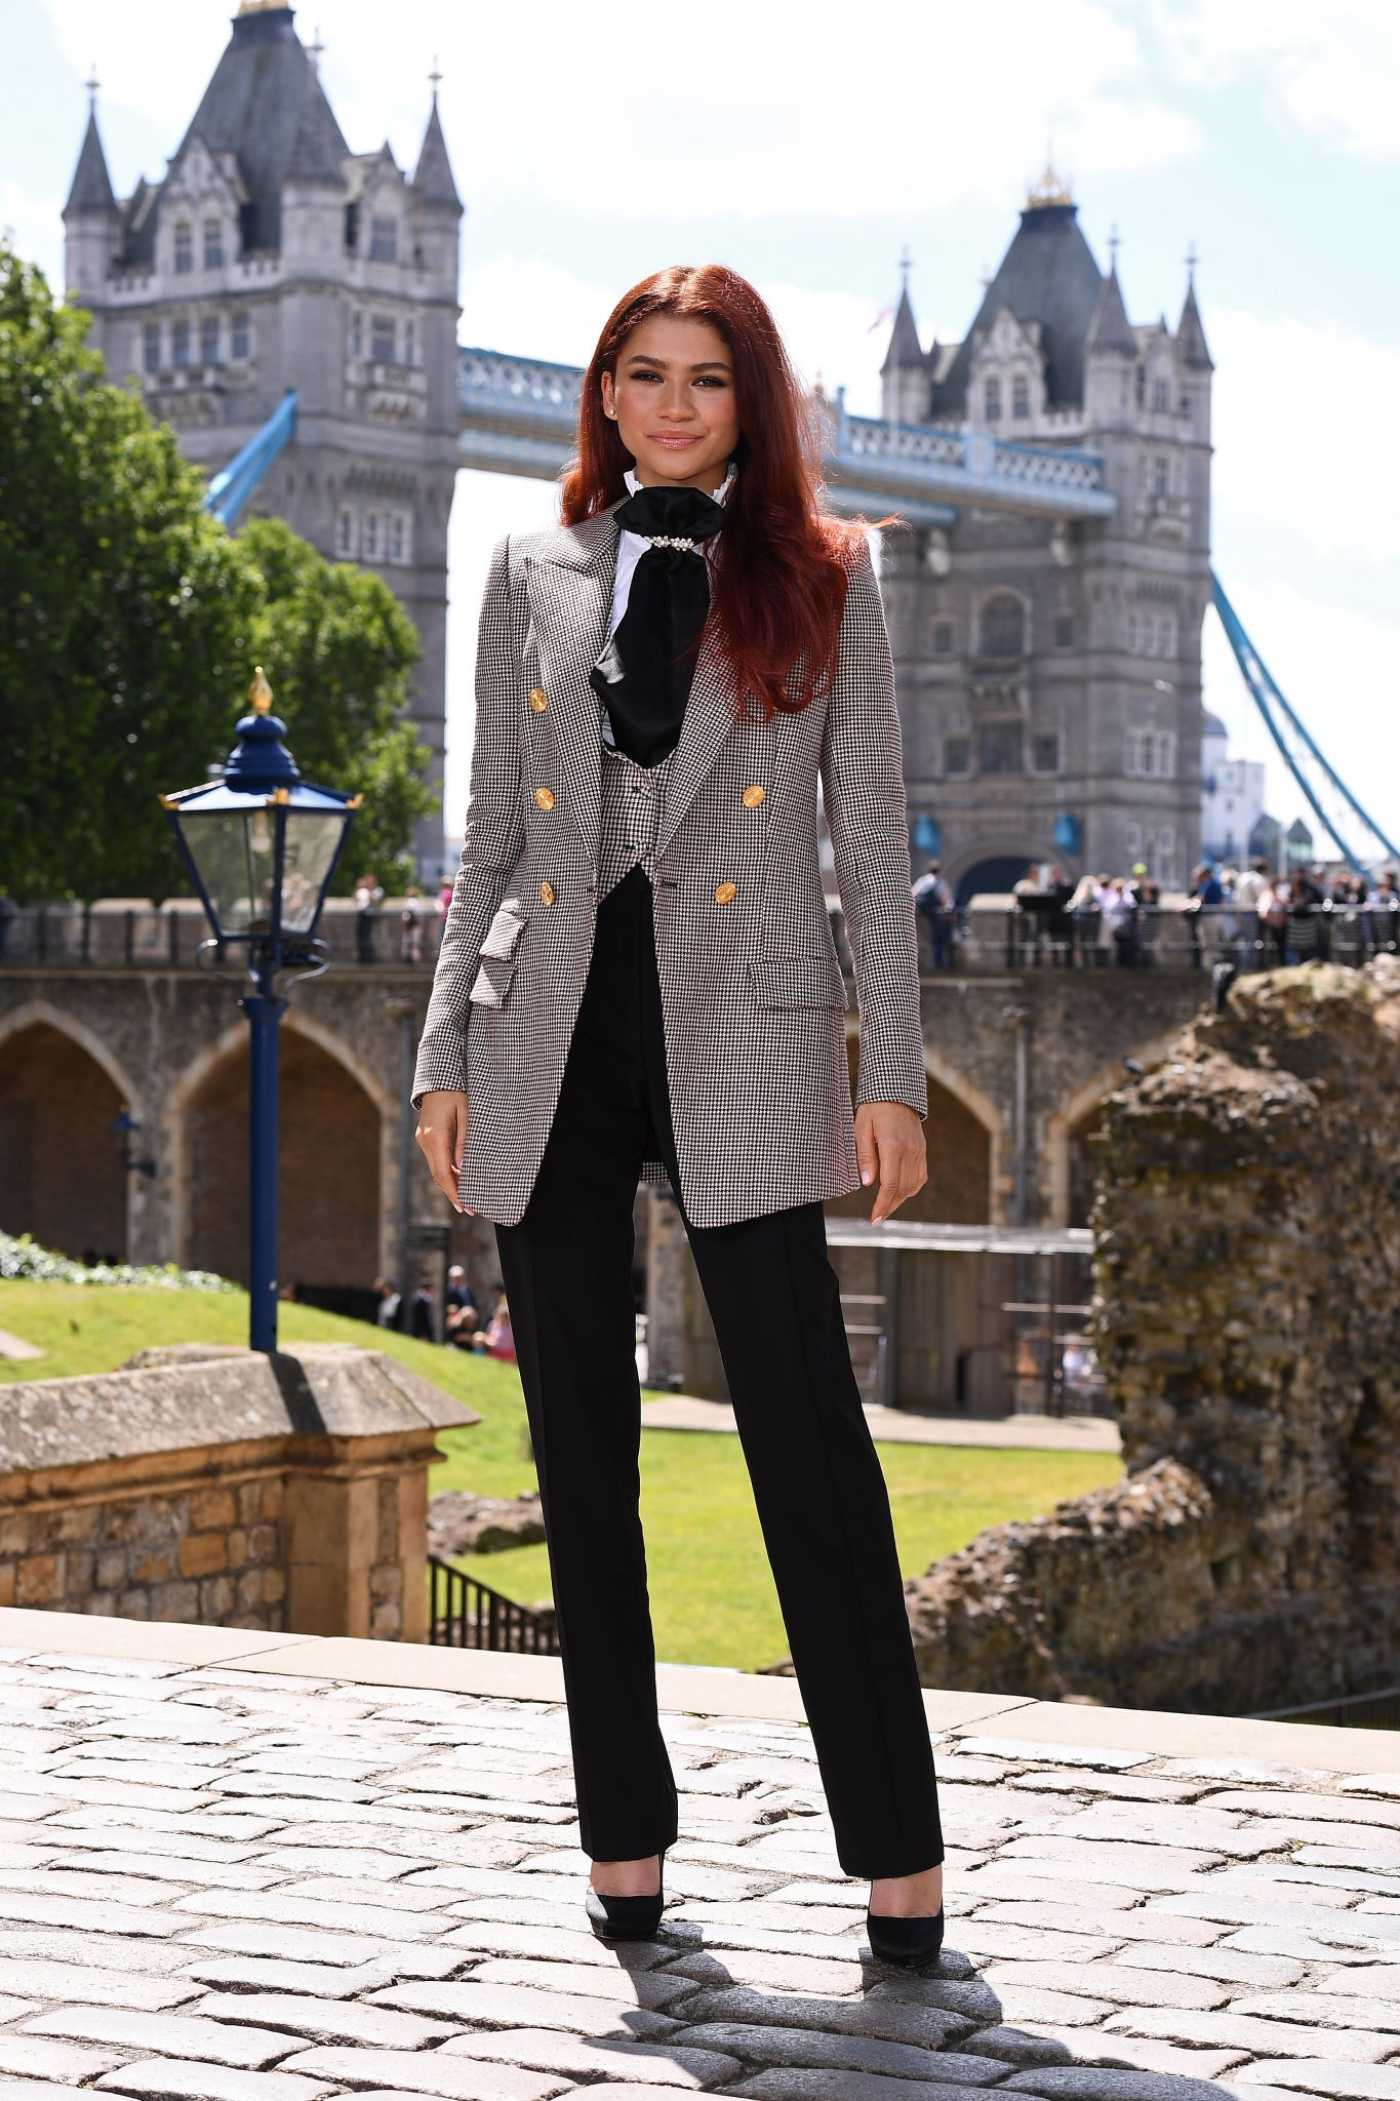 Zendaya Attends the Spider-Man: Far From Home Photocall in London 06/17/2019